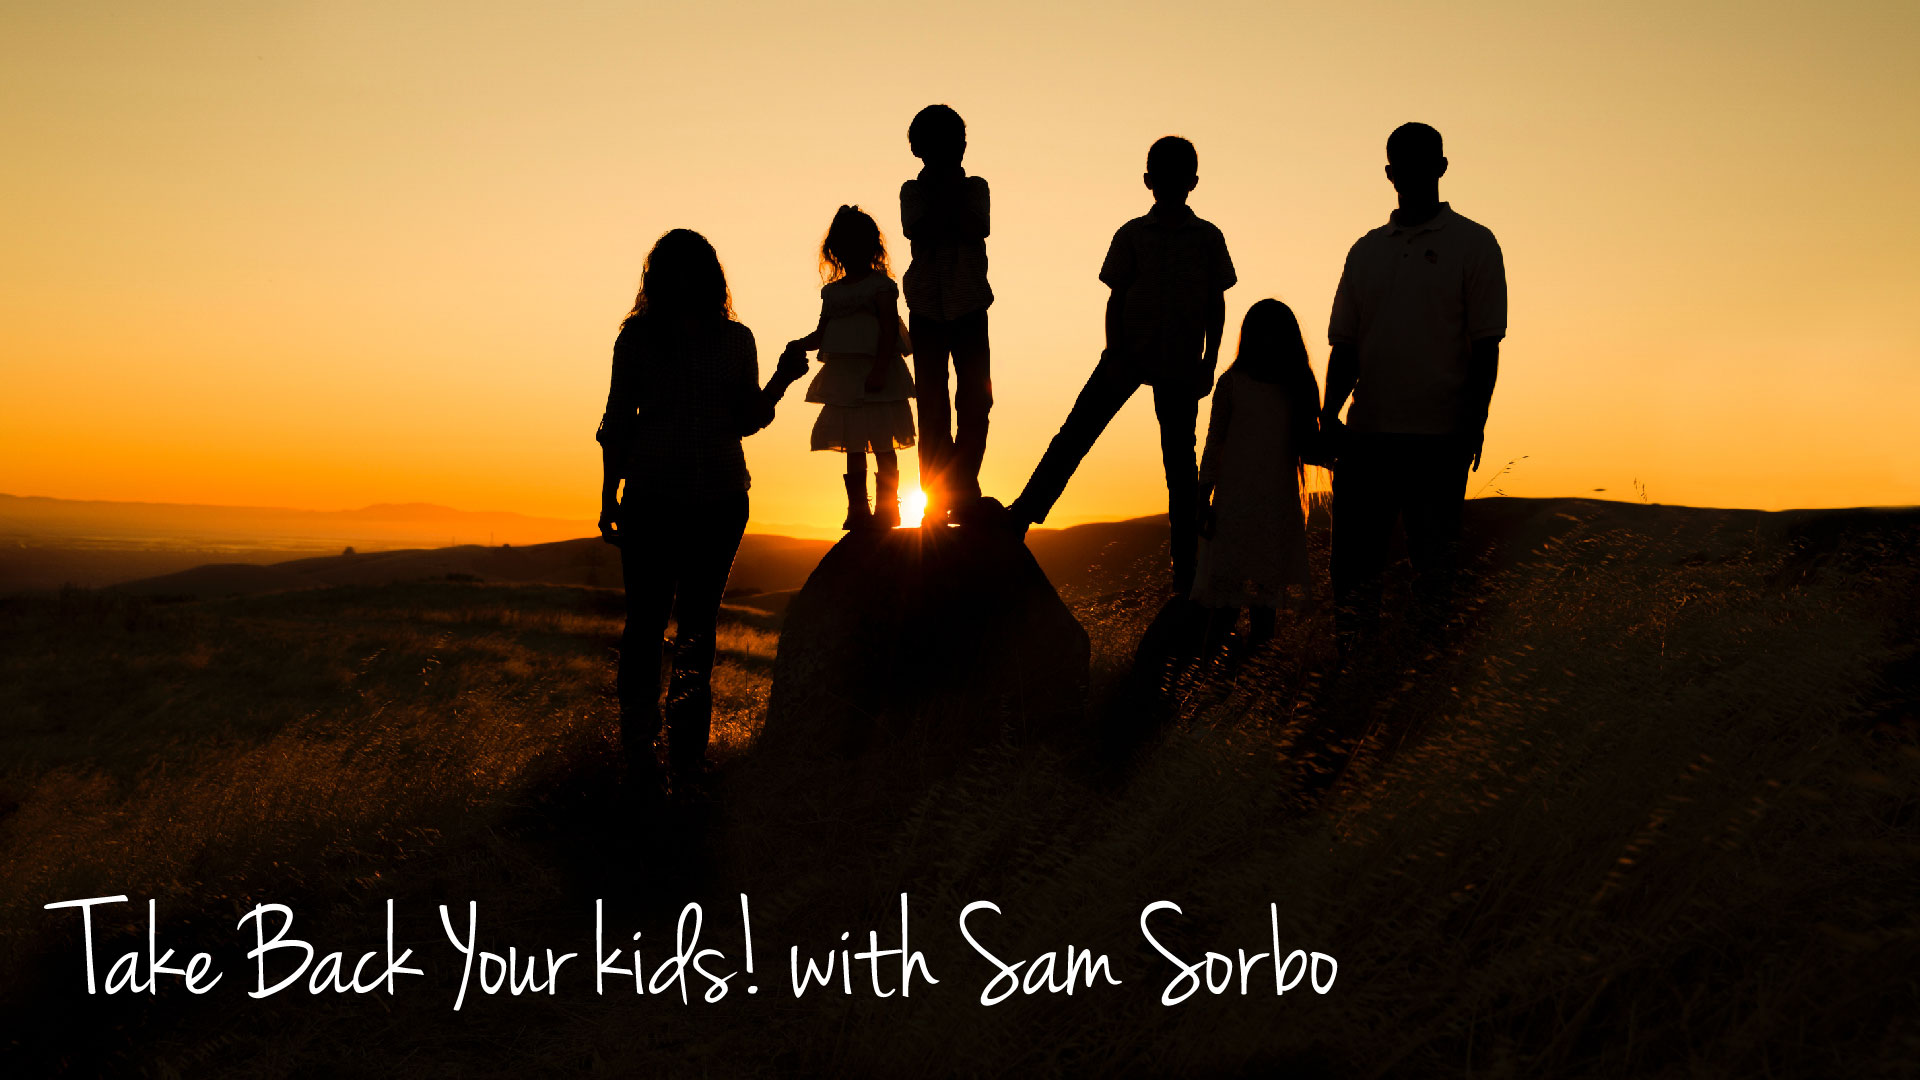 Take Back Your Kids! Interview with Sam Sorbo